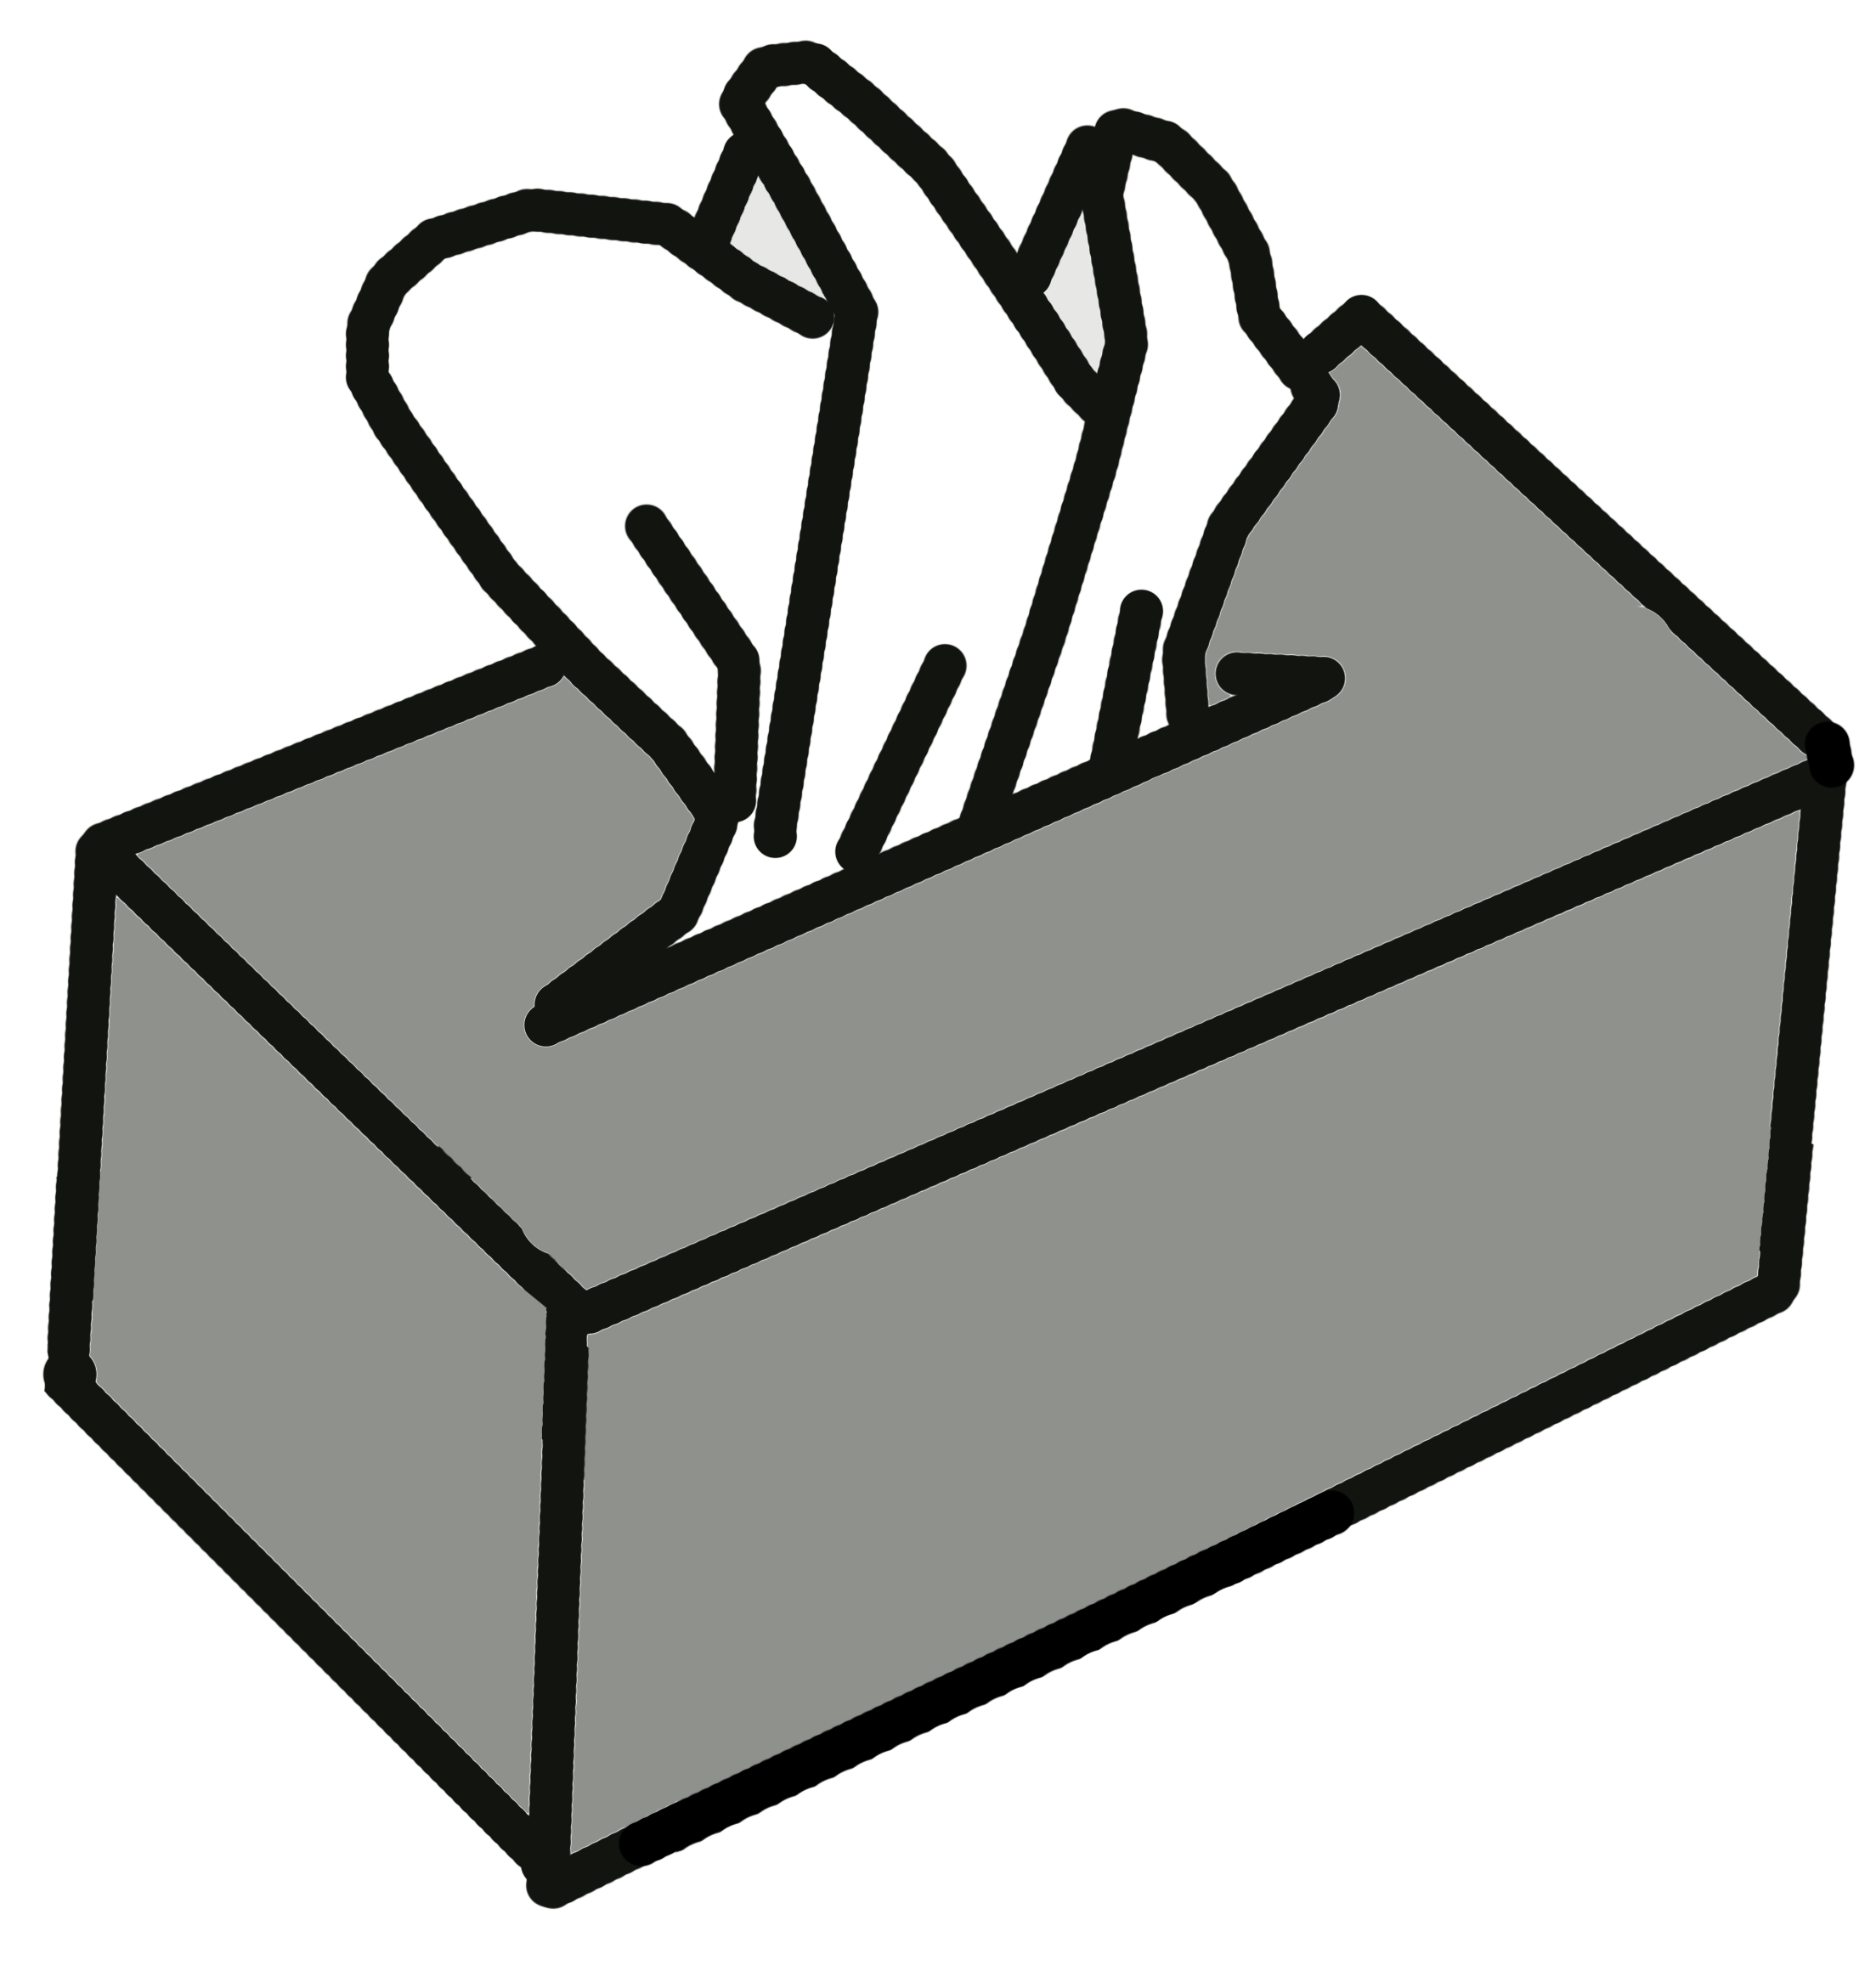 Free Tissue Box Clipart Black And White, Download Free Clip.